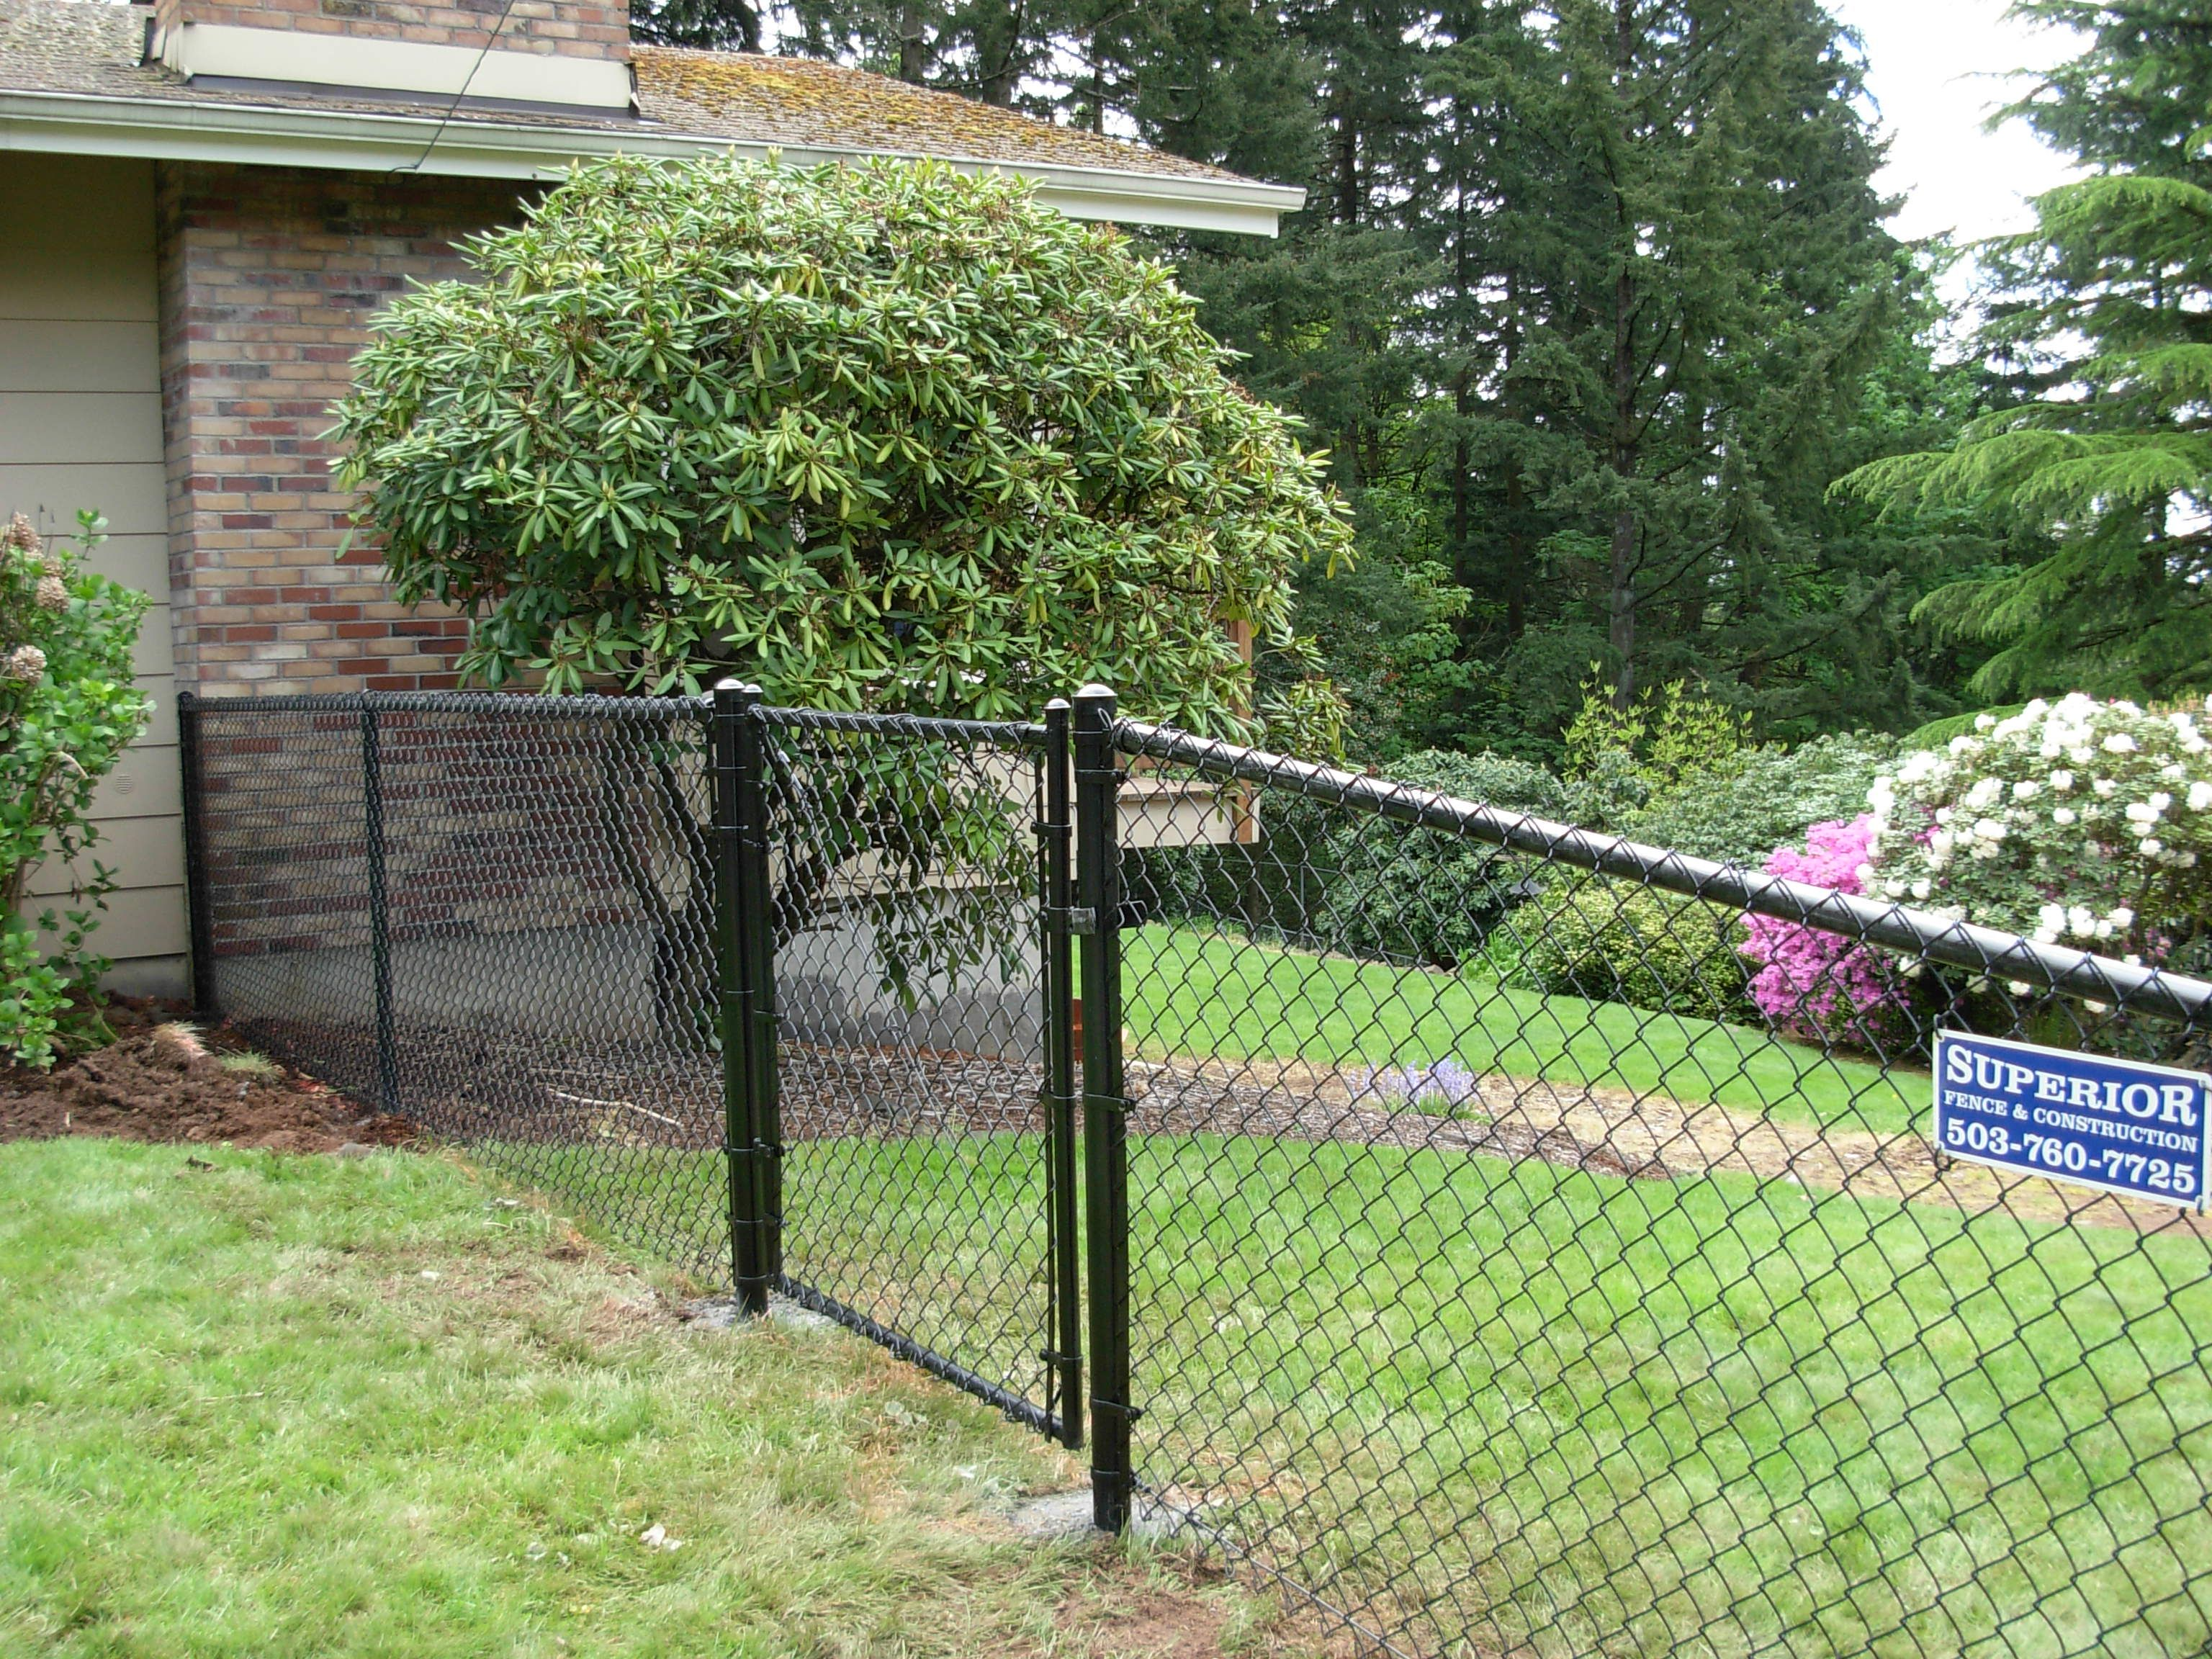 Black Chain Link Fence With Gate 503 760 7725 Chain Link